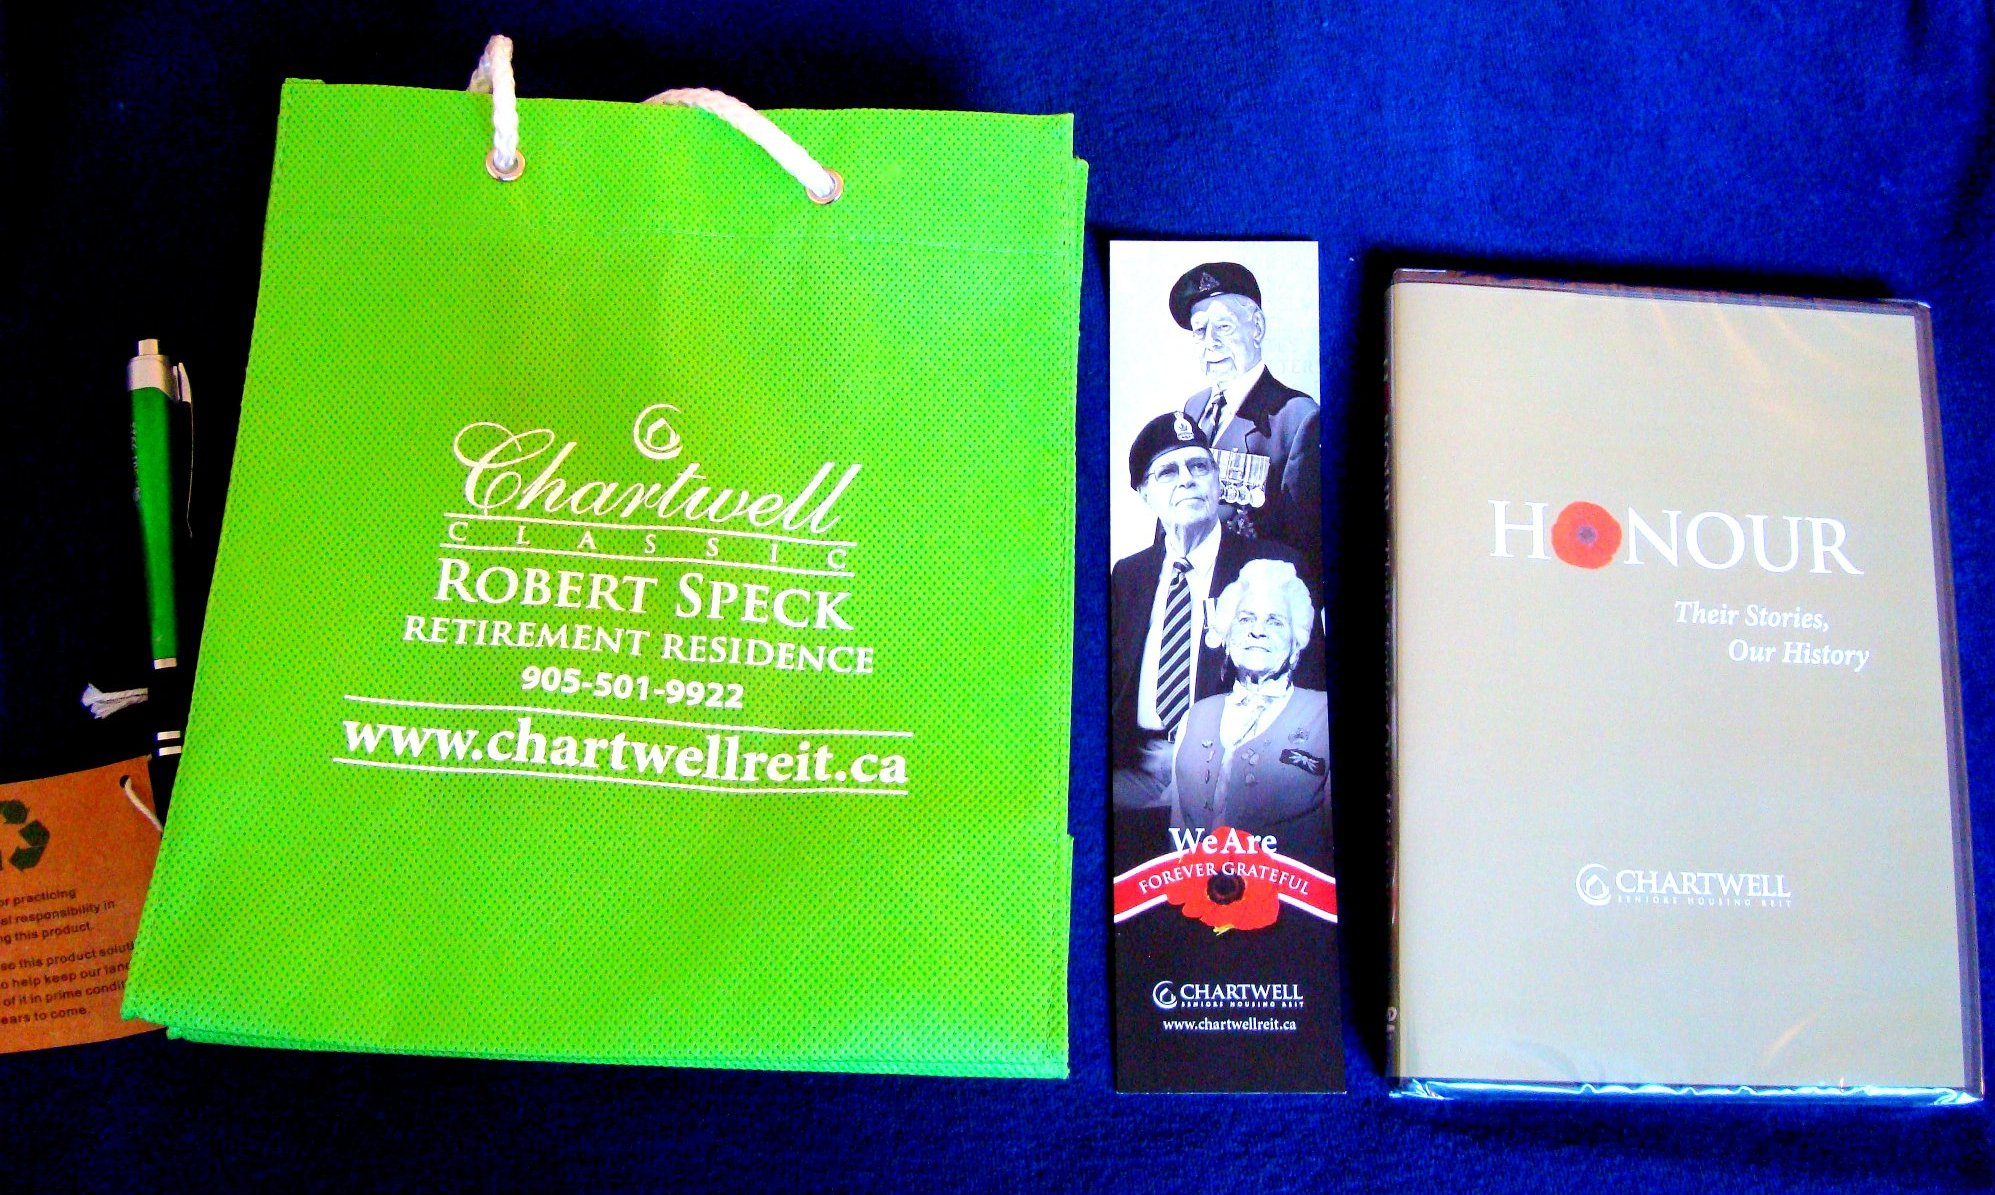 Souvenir for Rembrance Day Visitors from Chartwell Classic Robert Speck Retirement Residence